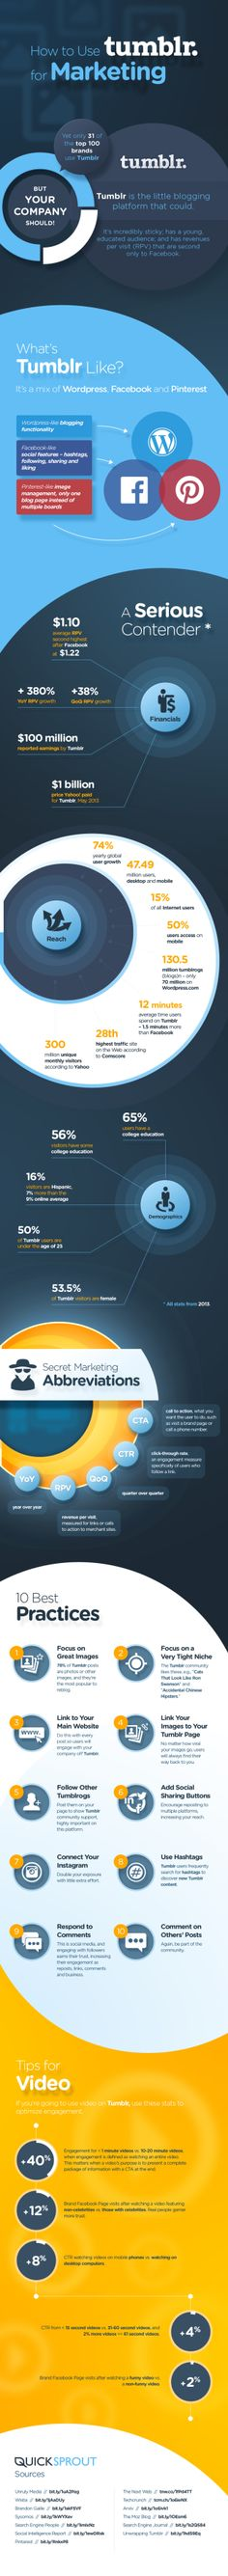 How to use Tumblr for Marketing #infografia #infographic #marketing